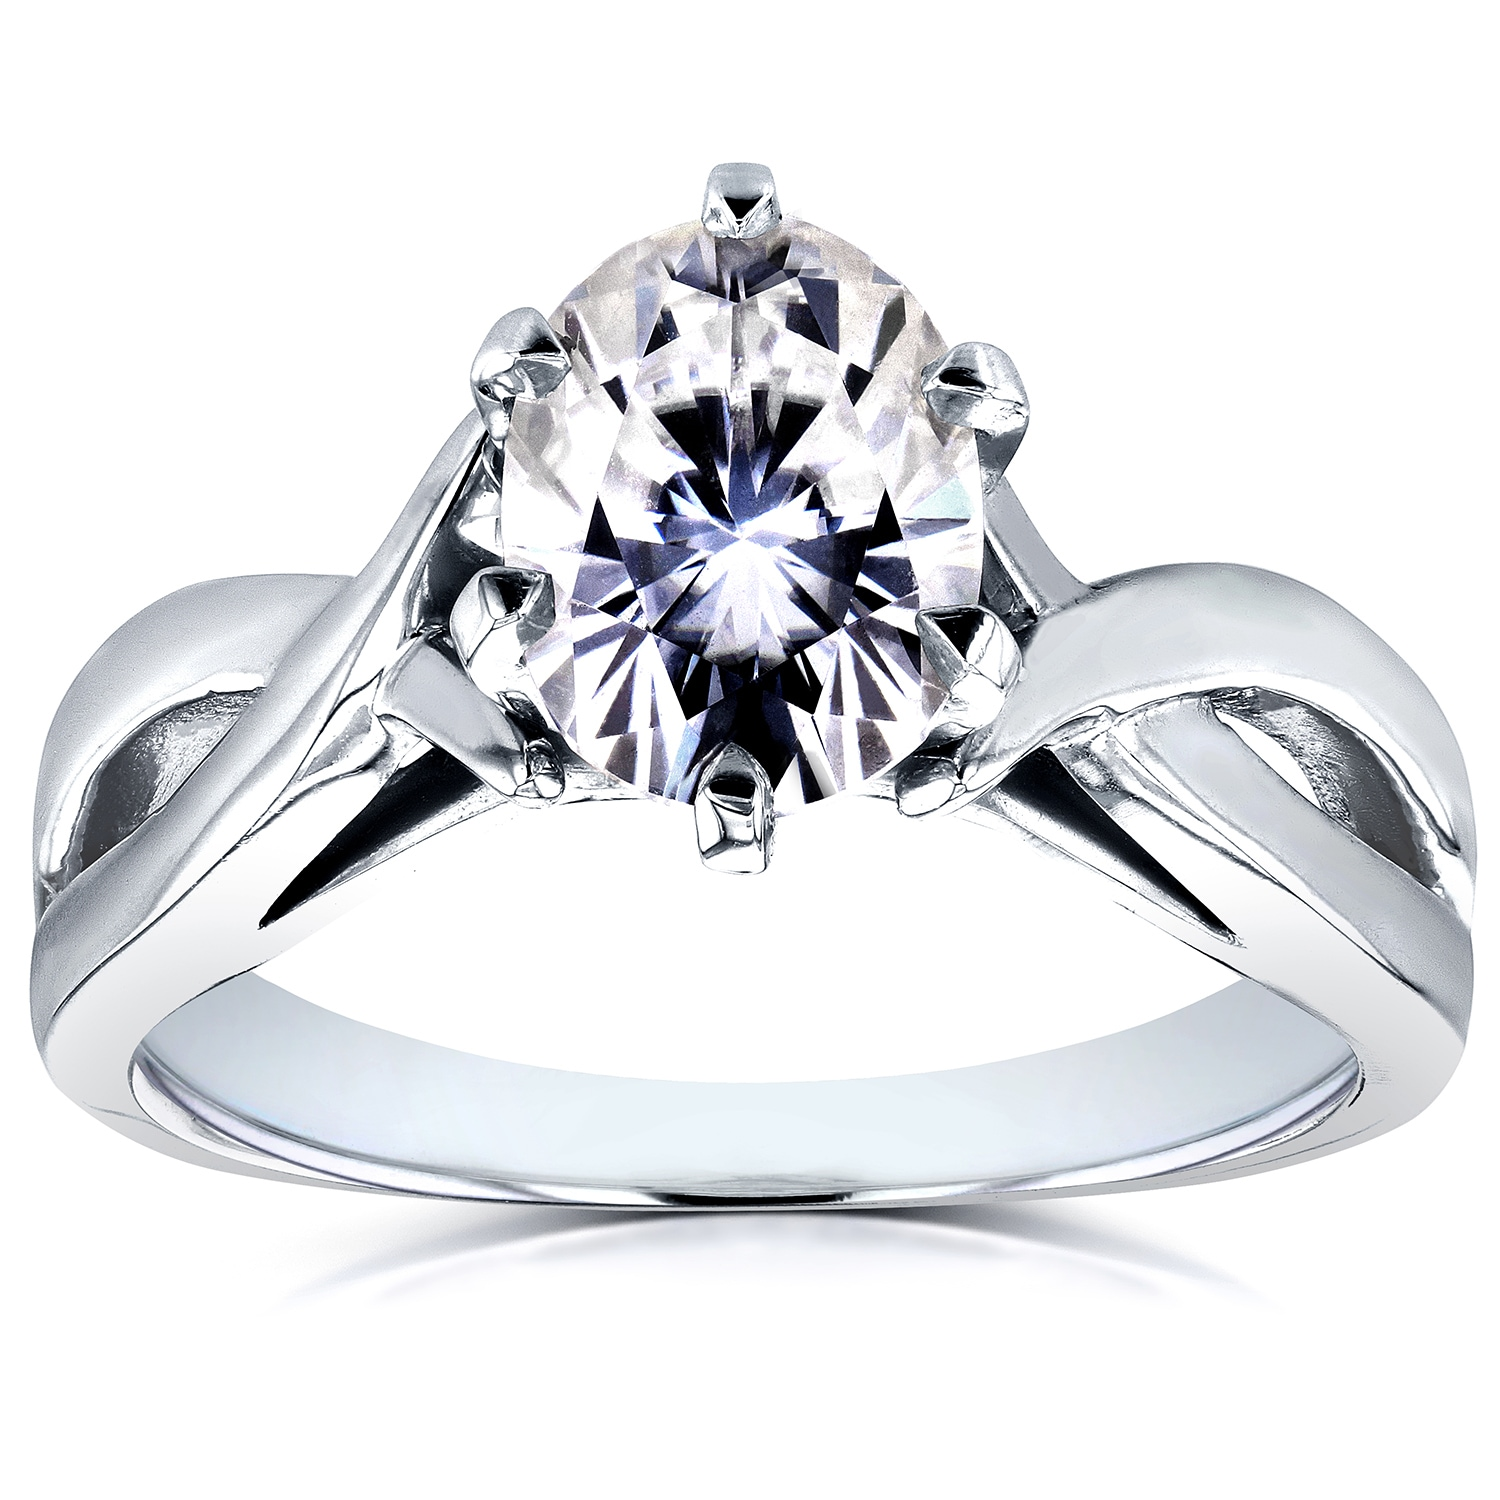 5885f66f22c6a Annello by Kobelli 14k White Gold 1 1/2ct Oval Forever One Moissanite  Solitaire Crossover Engagement Ring (DEF/VS)